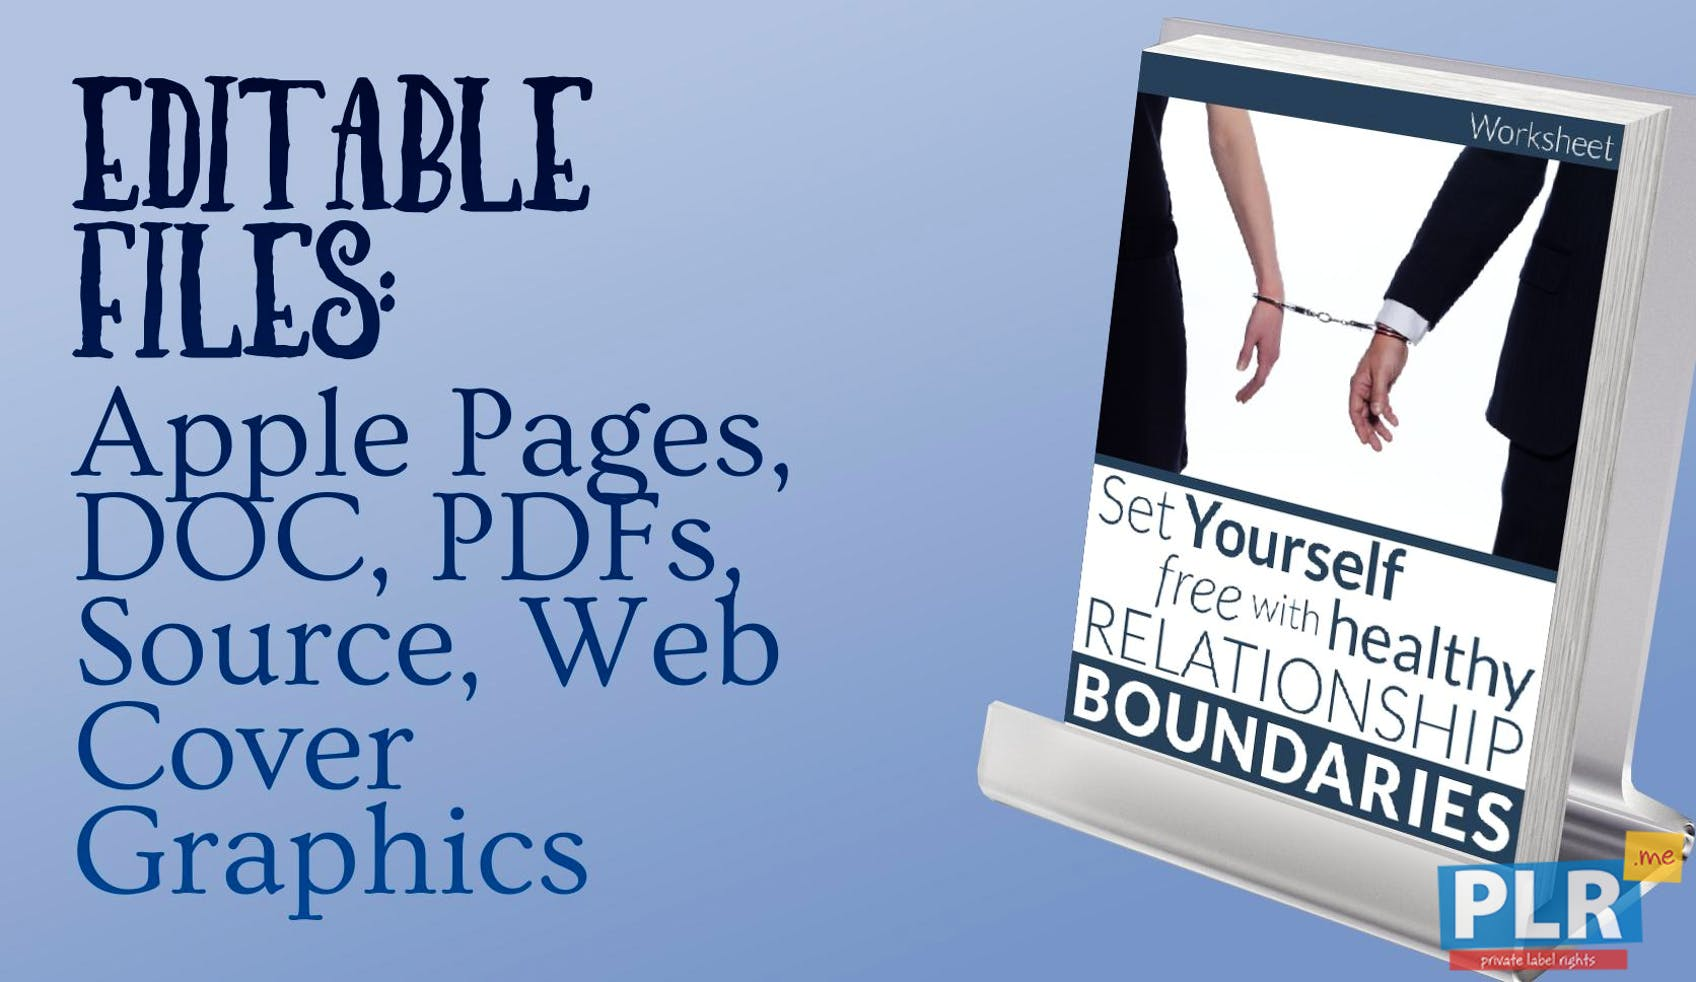 Set Yourself Free With Healthy Relationship Boundaries Worksheet